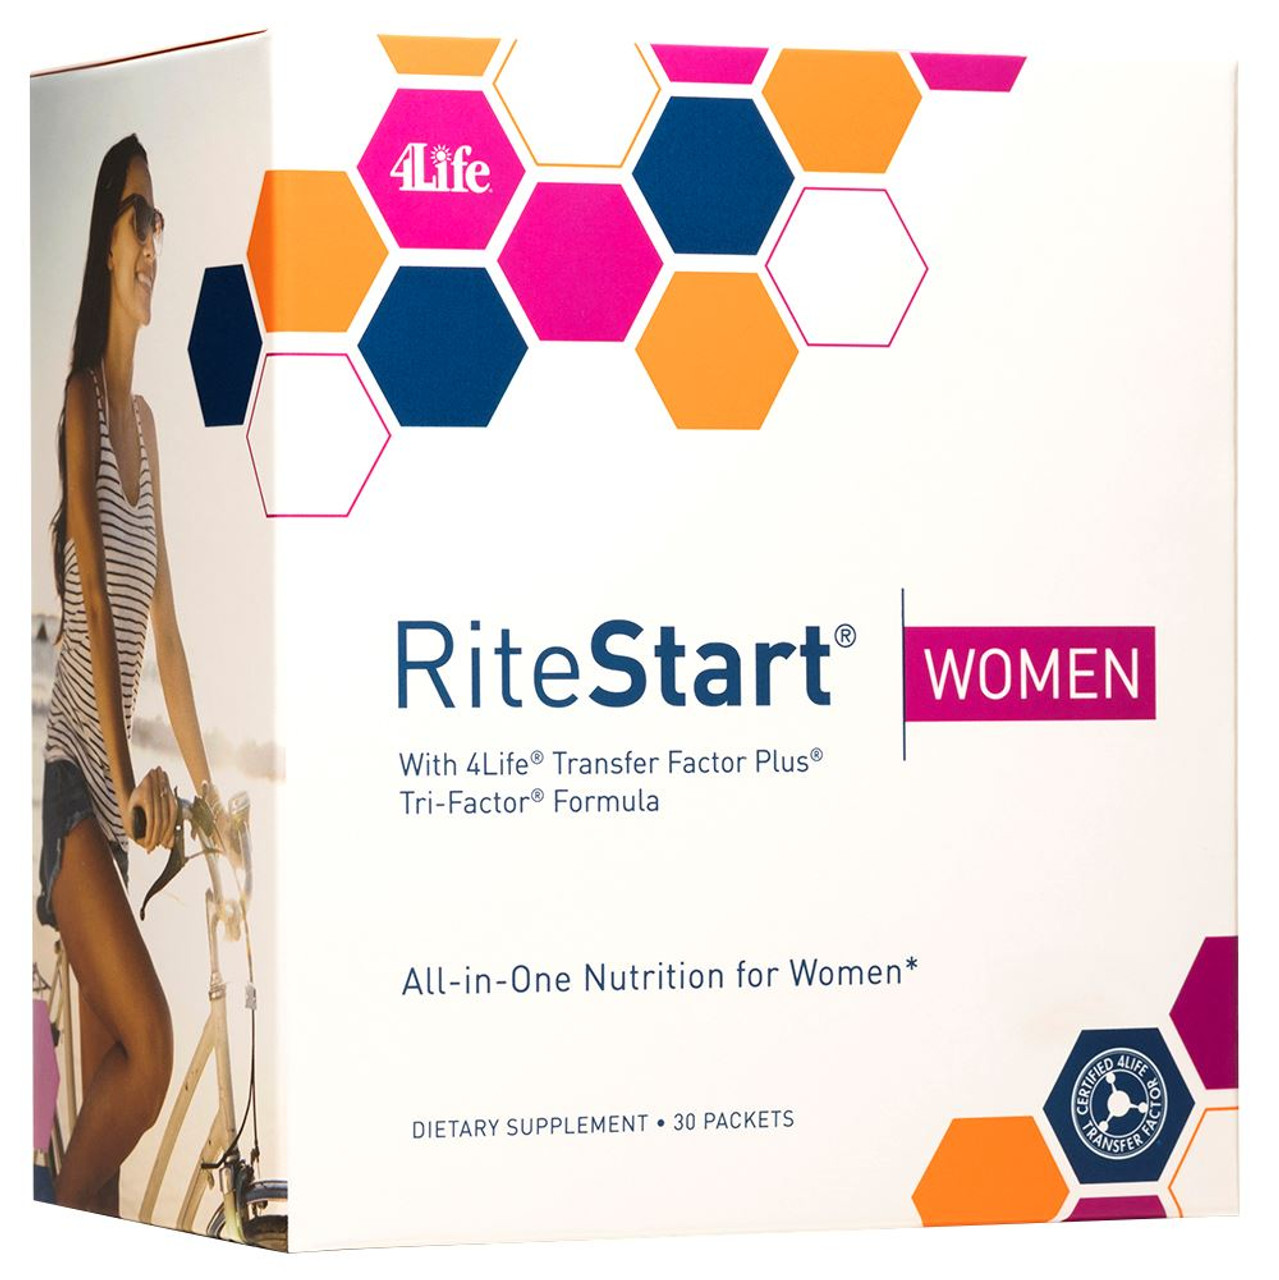 RiteStart Women 15 DAY SUPPLY